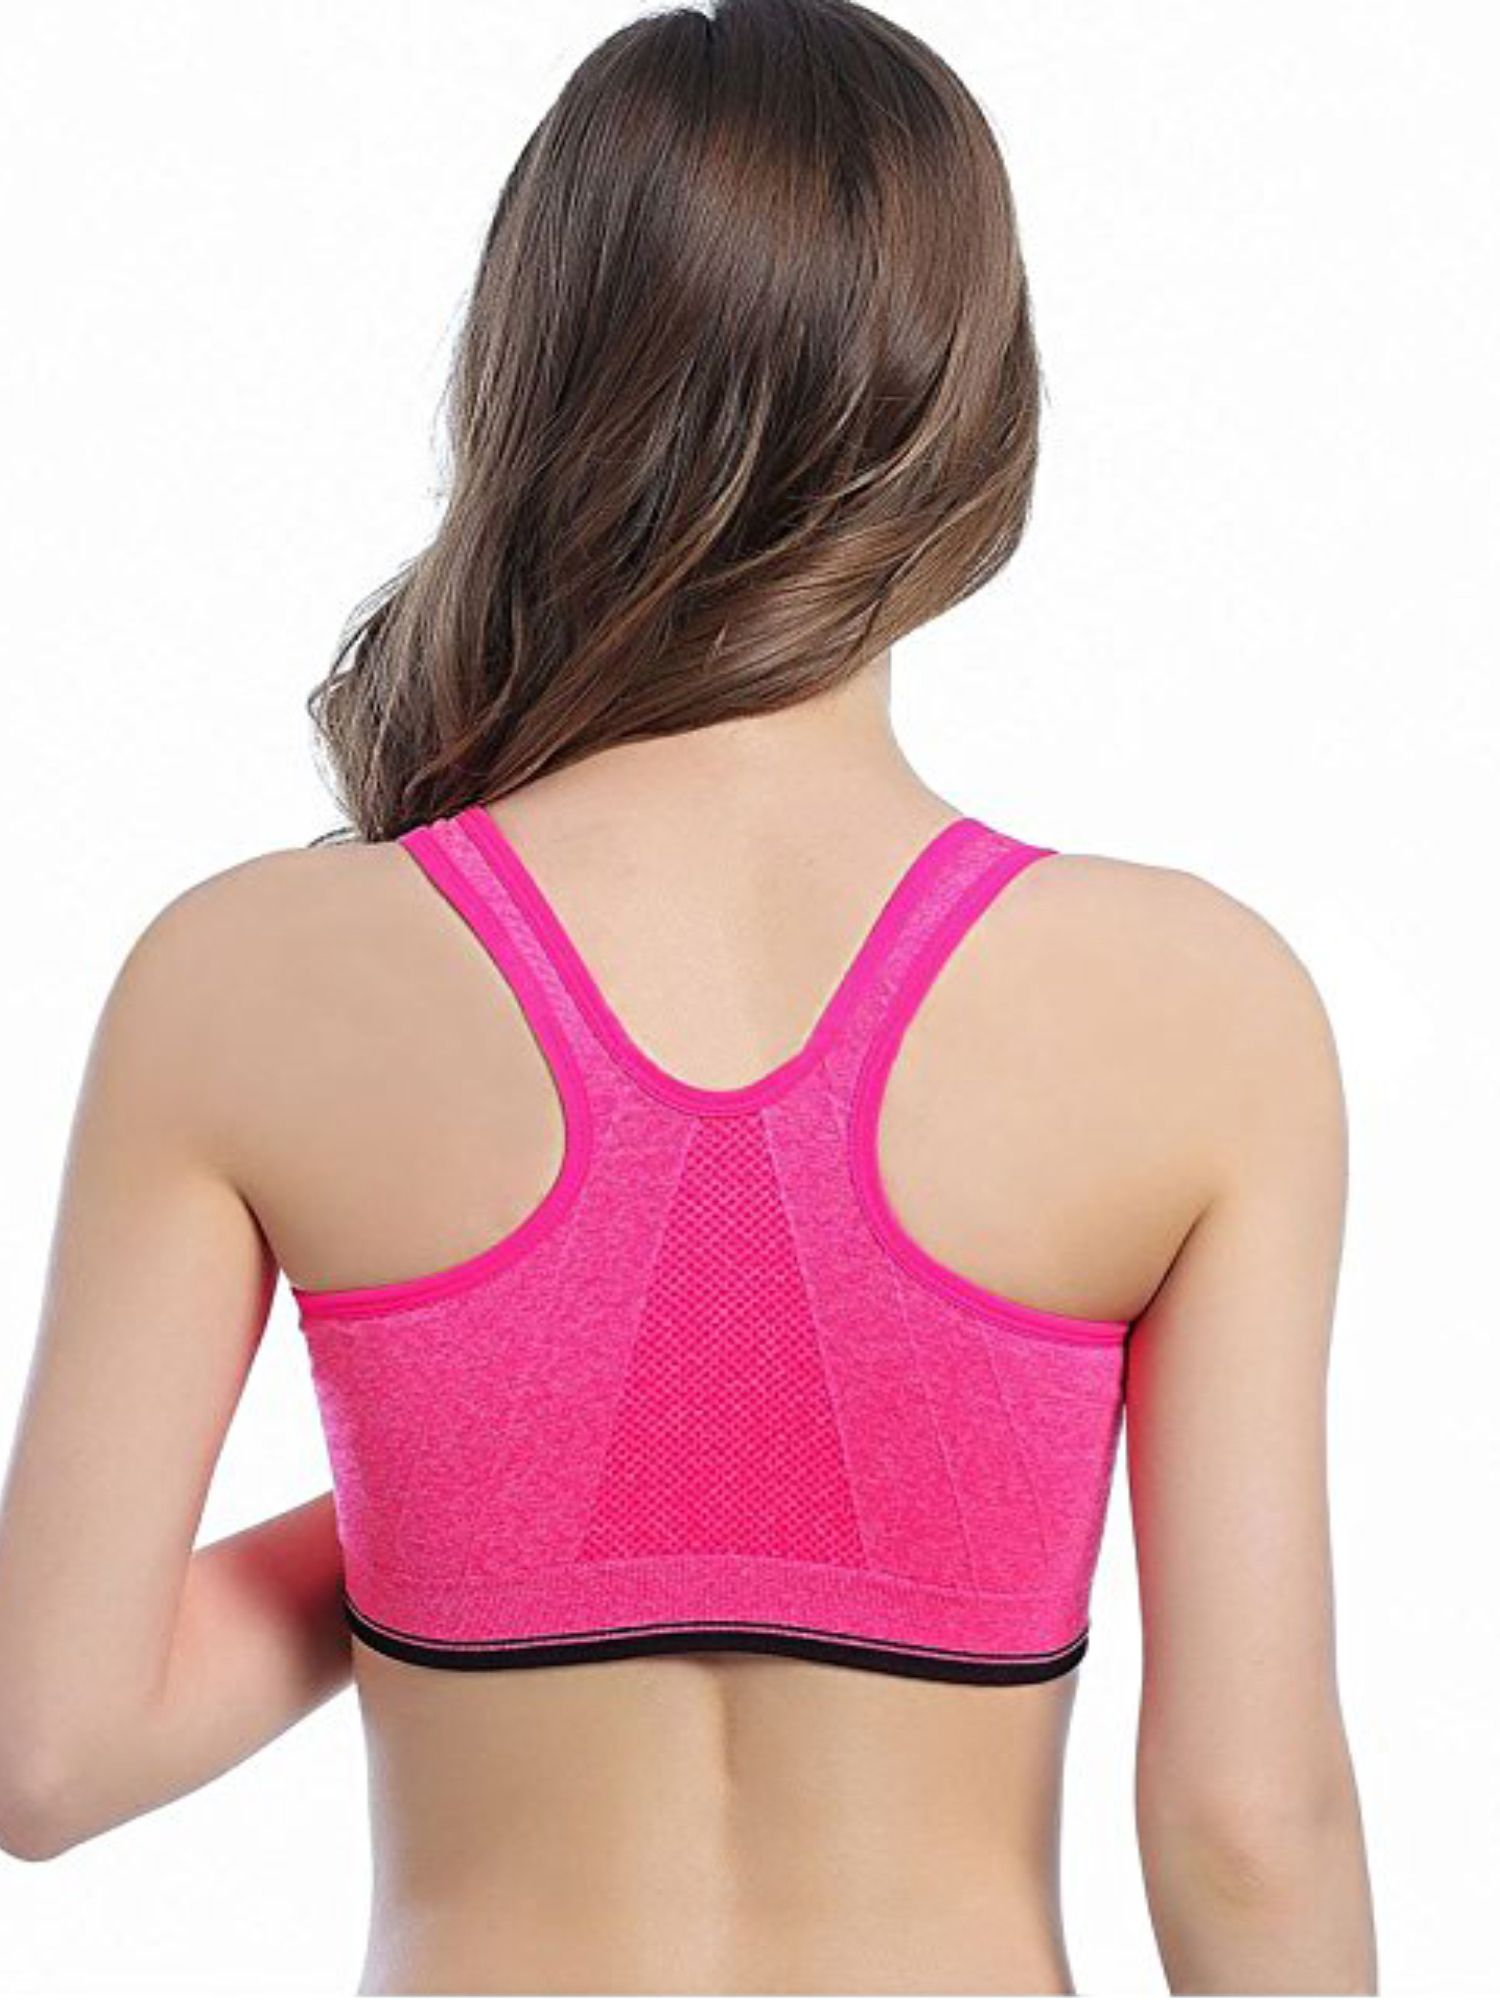 f45be22ecda LELINTA Women s Sports Bra Racerback Padded Stretch Fitness Tops Workout  Zipper Yoga Bra Five Color Size S-L Racerback